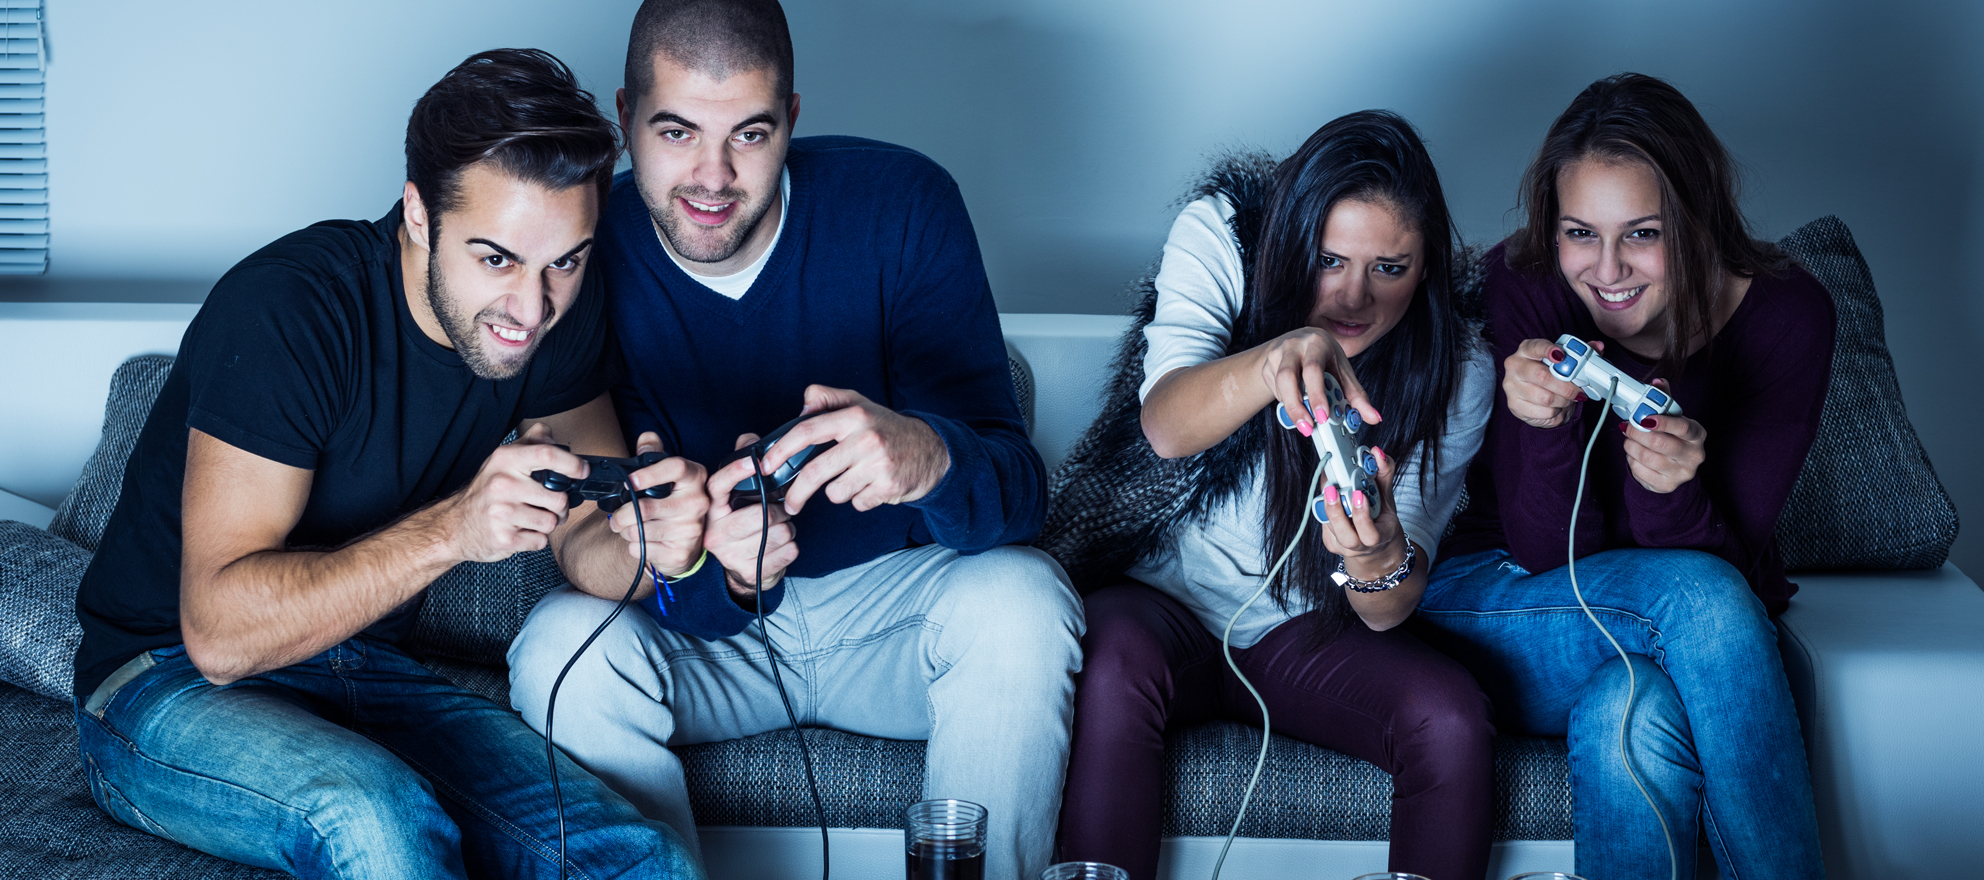 Do real estate agents prefer PlayStation or Xbox?